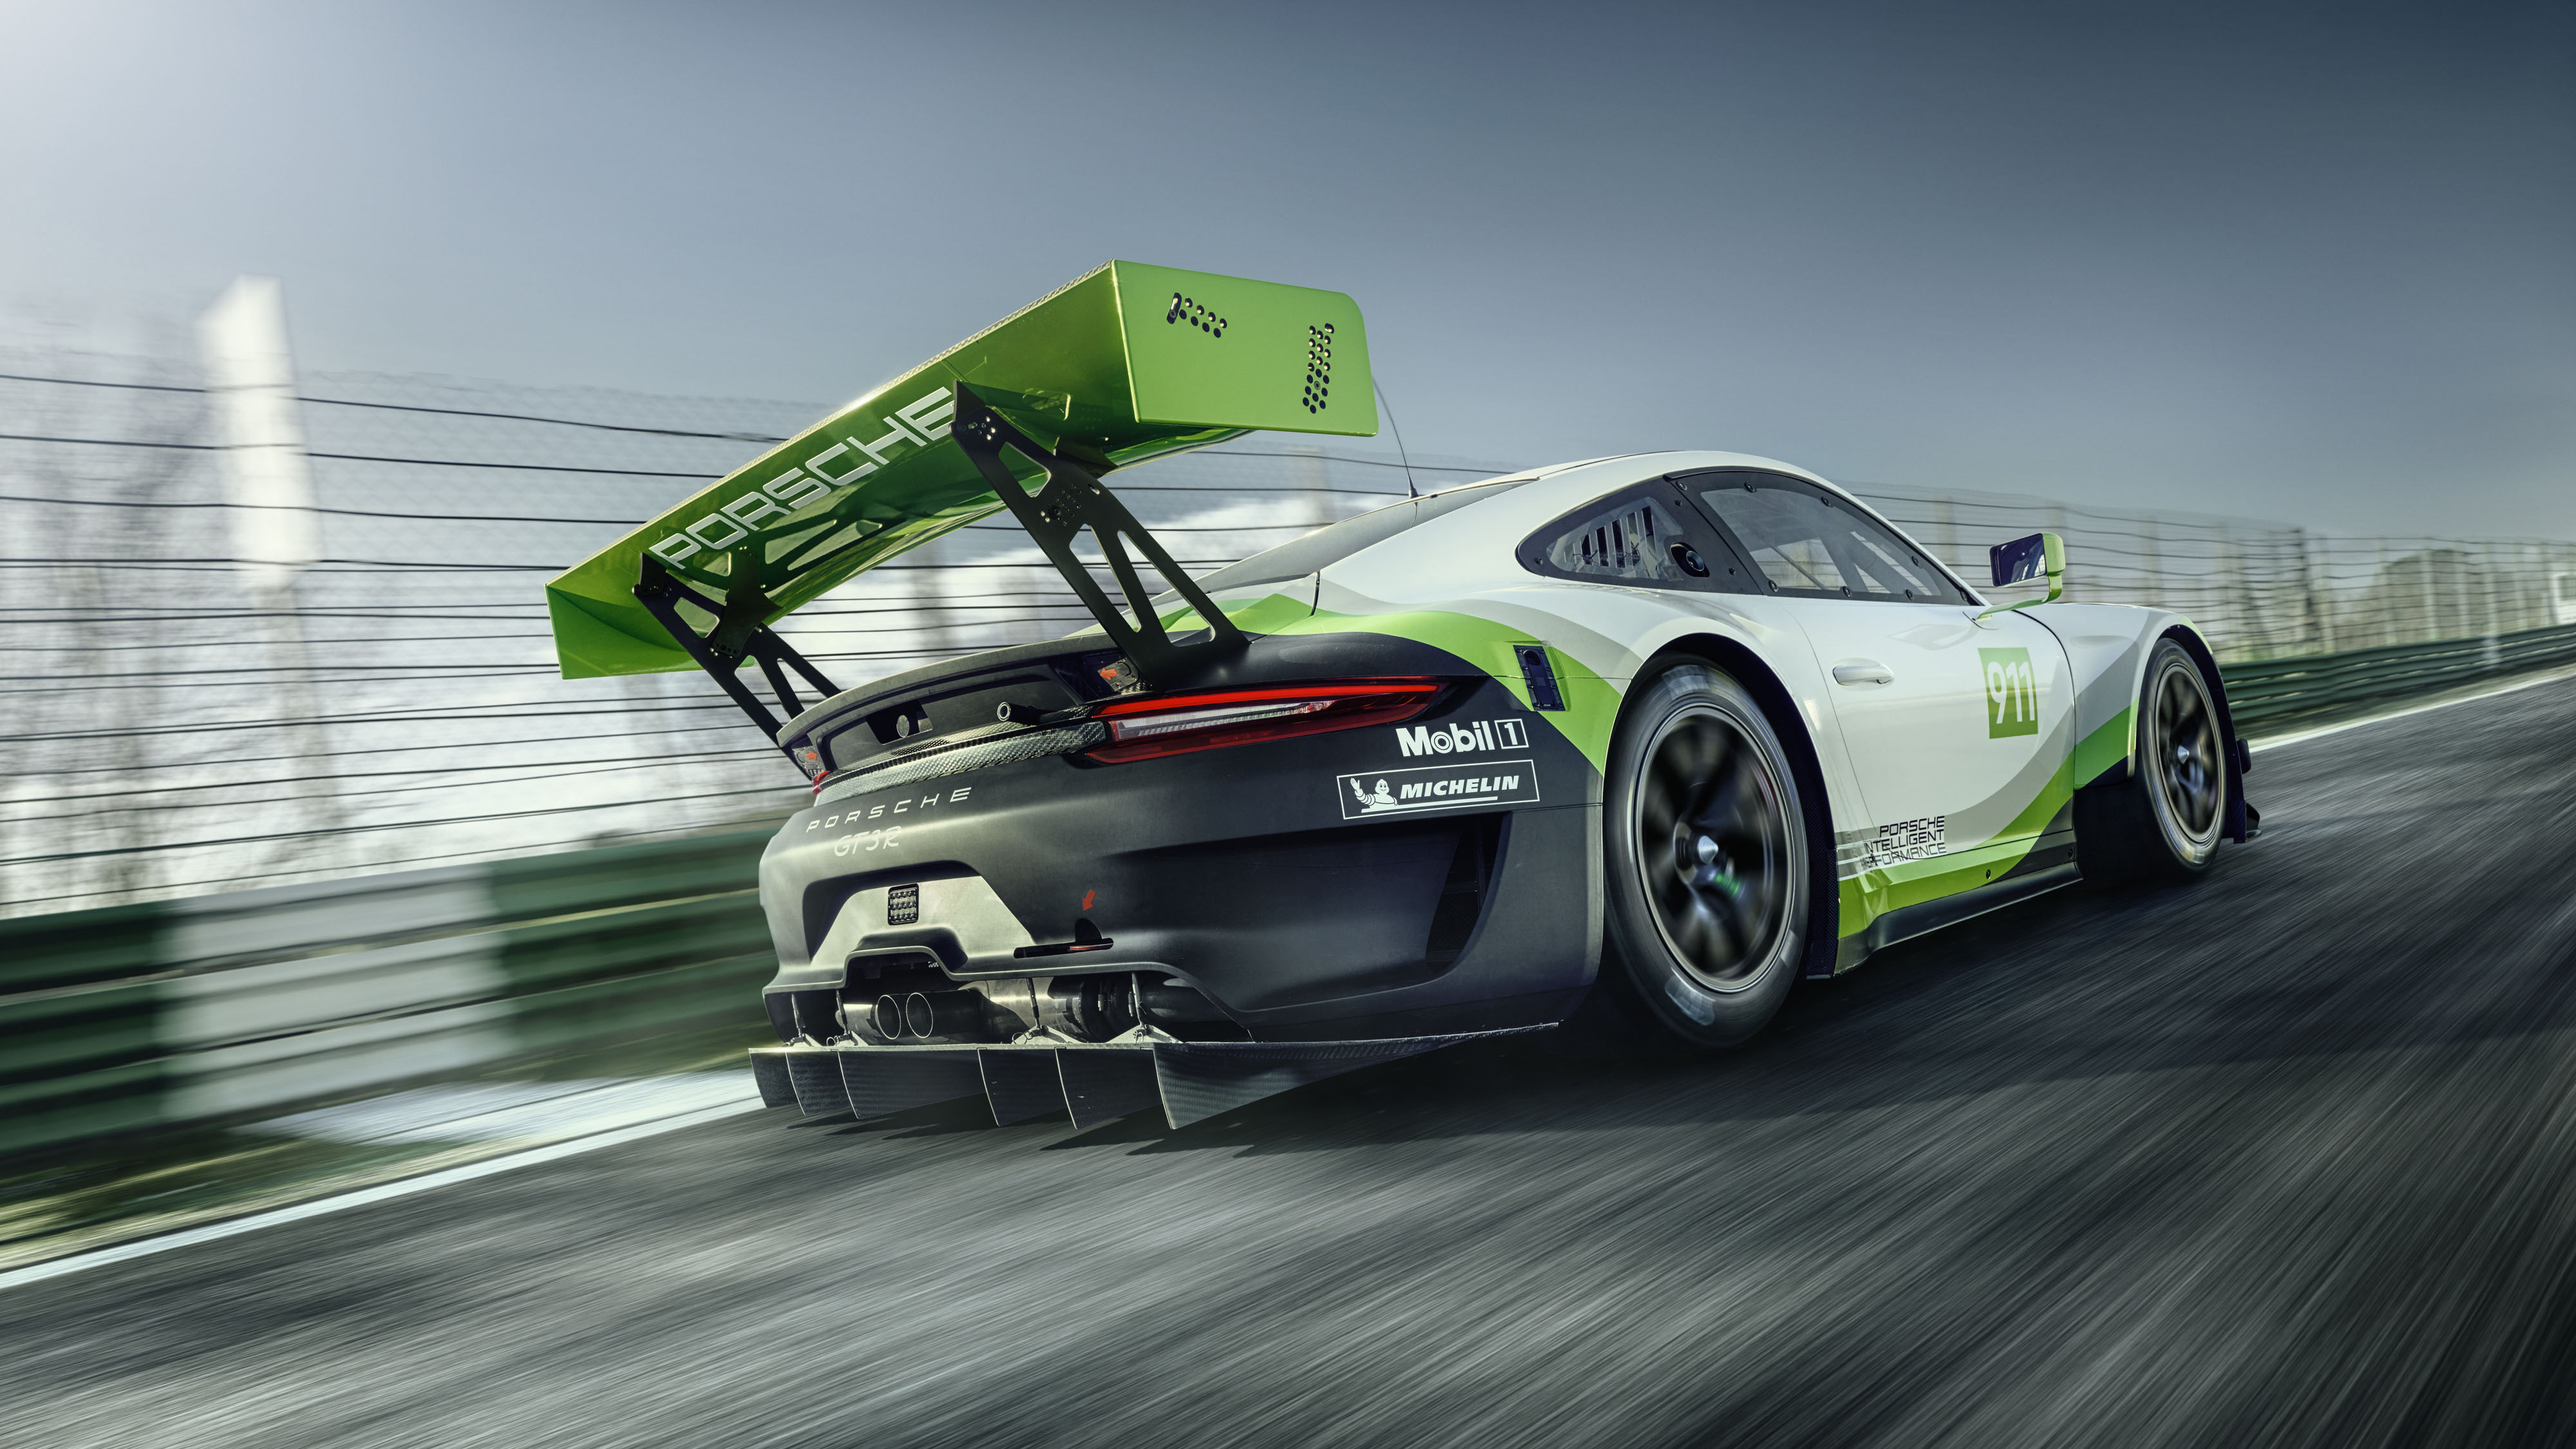 1920x1080 Porsche 911 Gt3 R 2018 Rear Laptop Full Hd 1080p Hd 4k Wallpapers Images Backgrounds Photos And Pictures